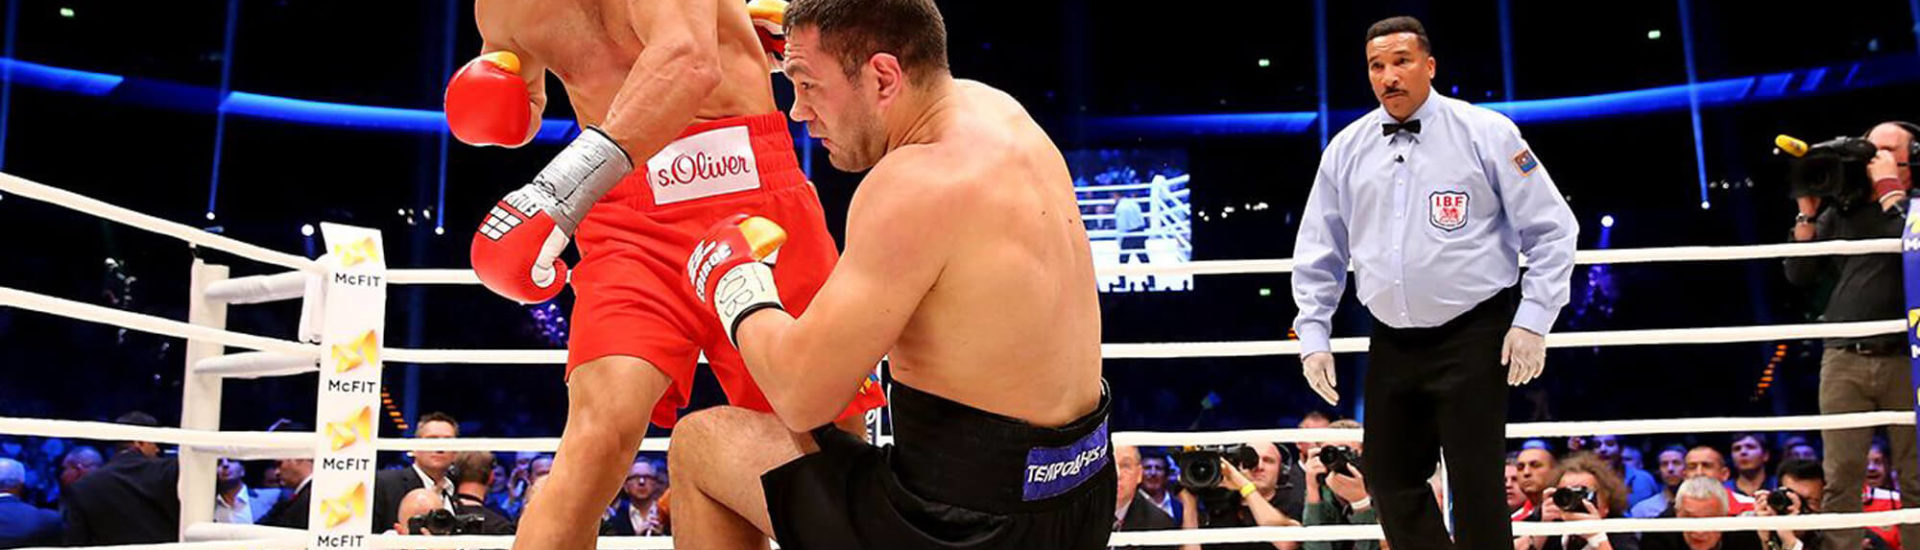 It's the Right Time to Appreciate Wladimir Klitschko's All-Time Great Career